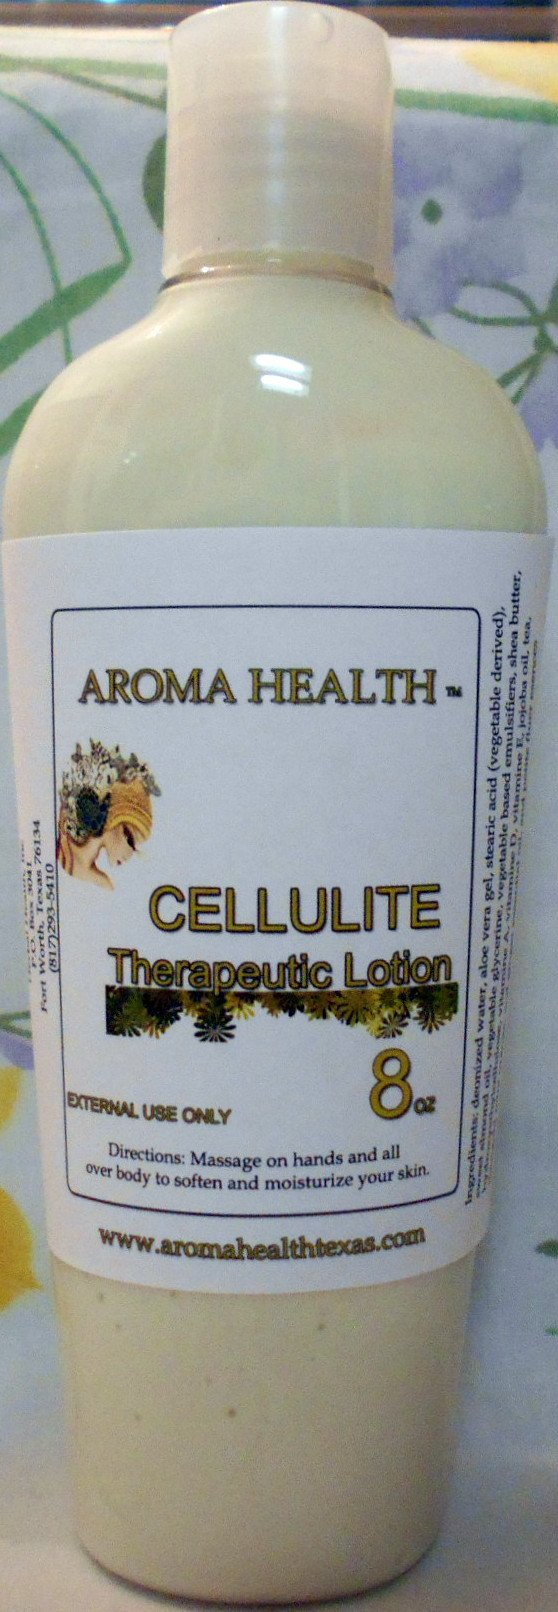 Cellulite Lotion Natural Skincare - Aroma Health Texas